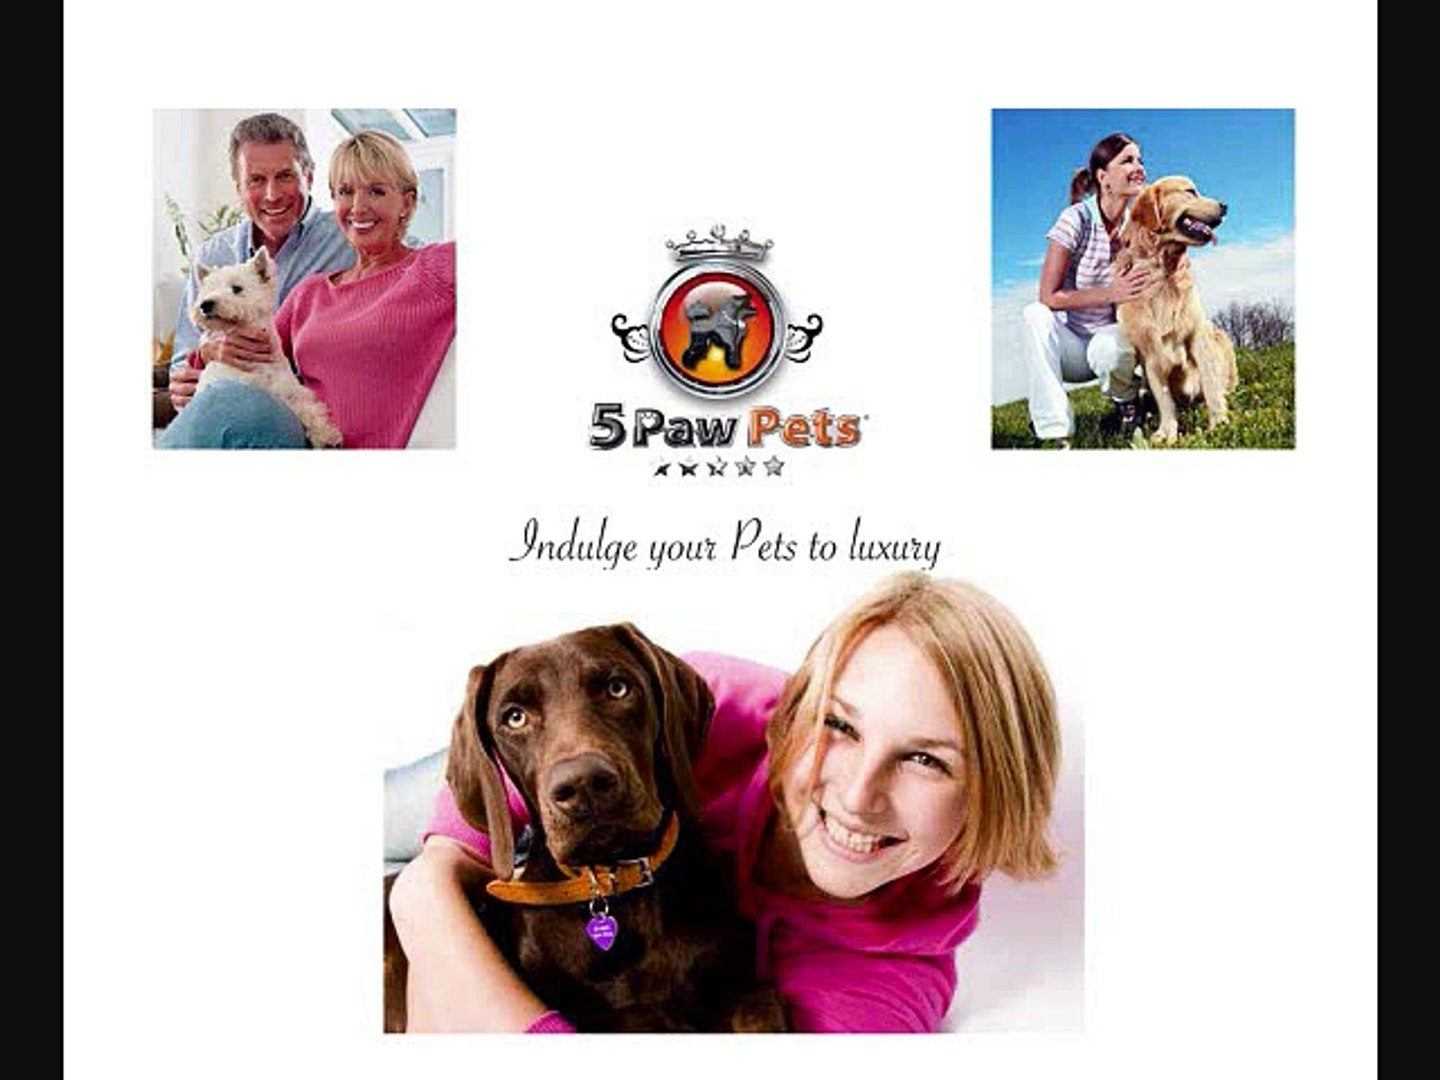 professional pet sitters in hollywood florida   florida  pet sitting    professsional pet care